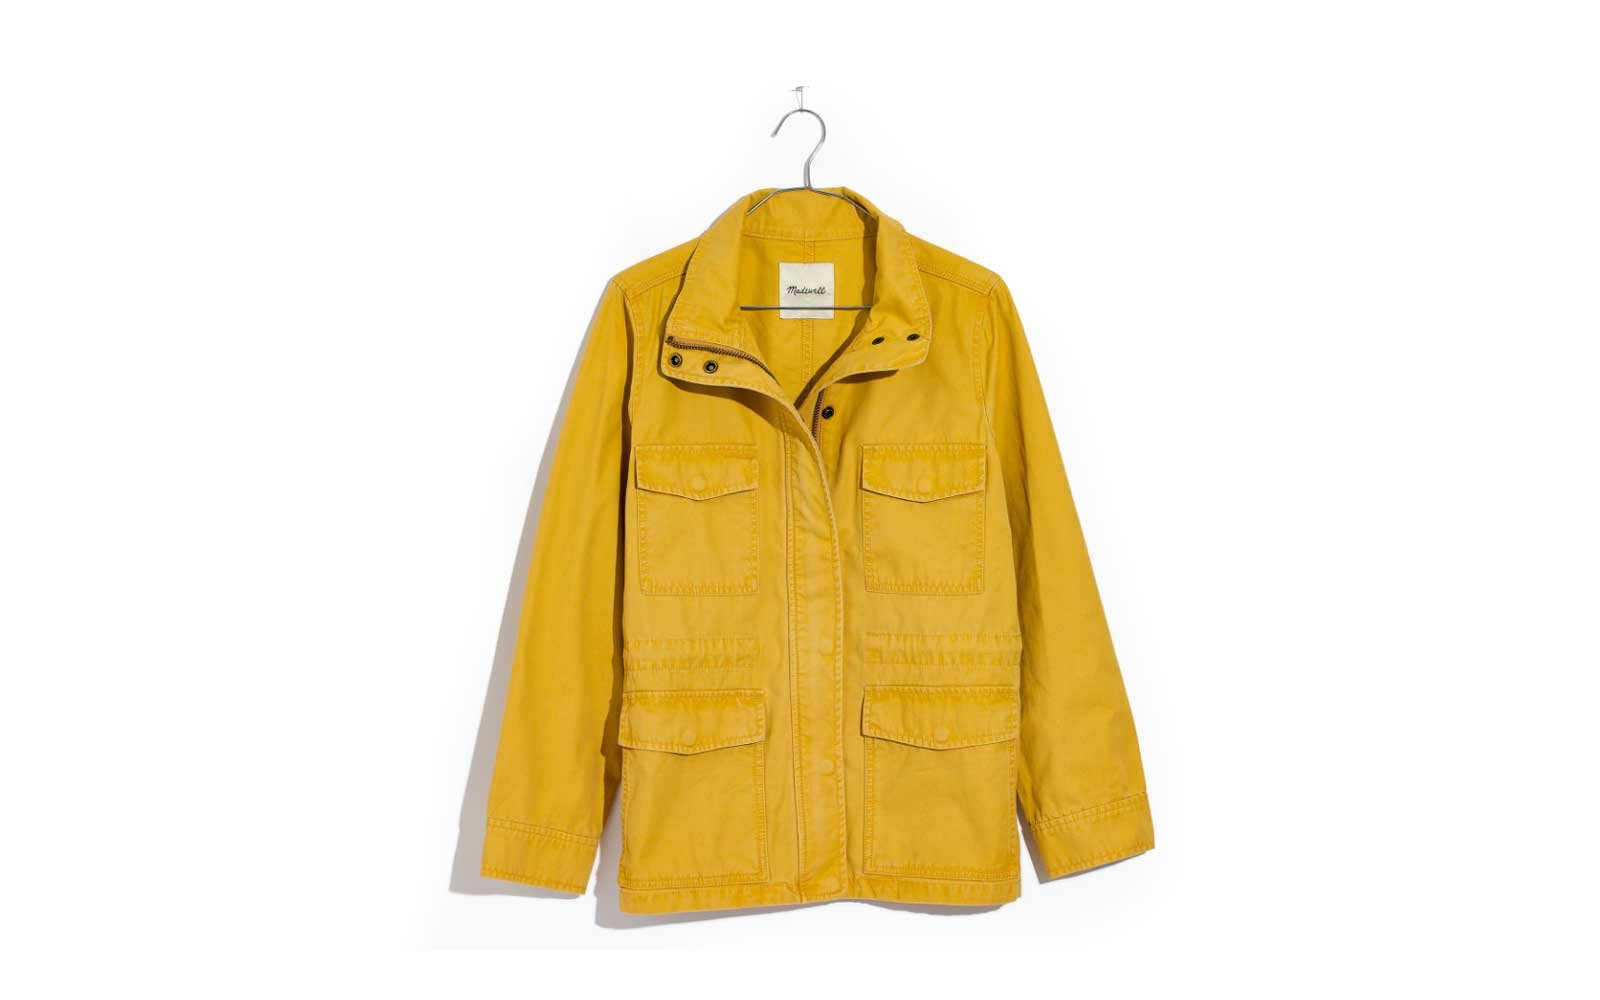 madewell spring jackets